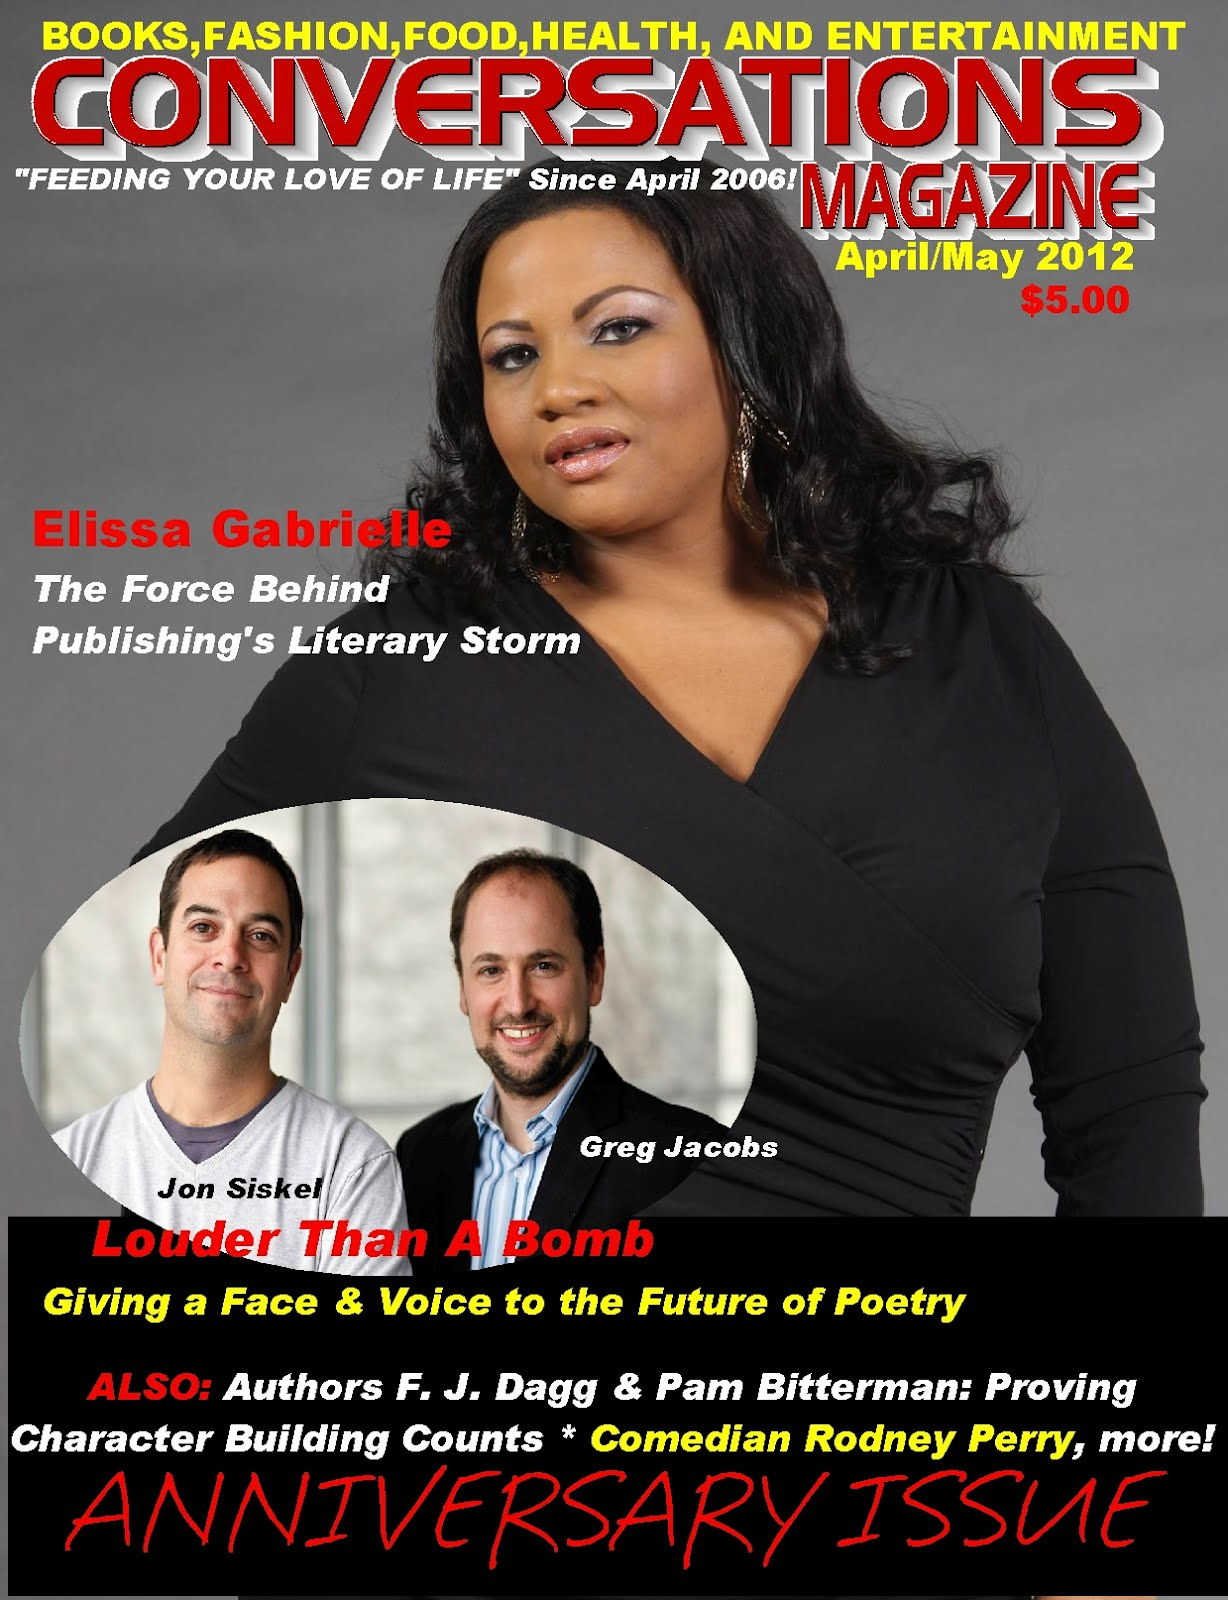 Order The Conversations Magazine's April/May 2012 Anniversary Issue NOW!